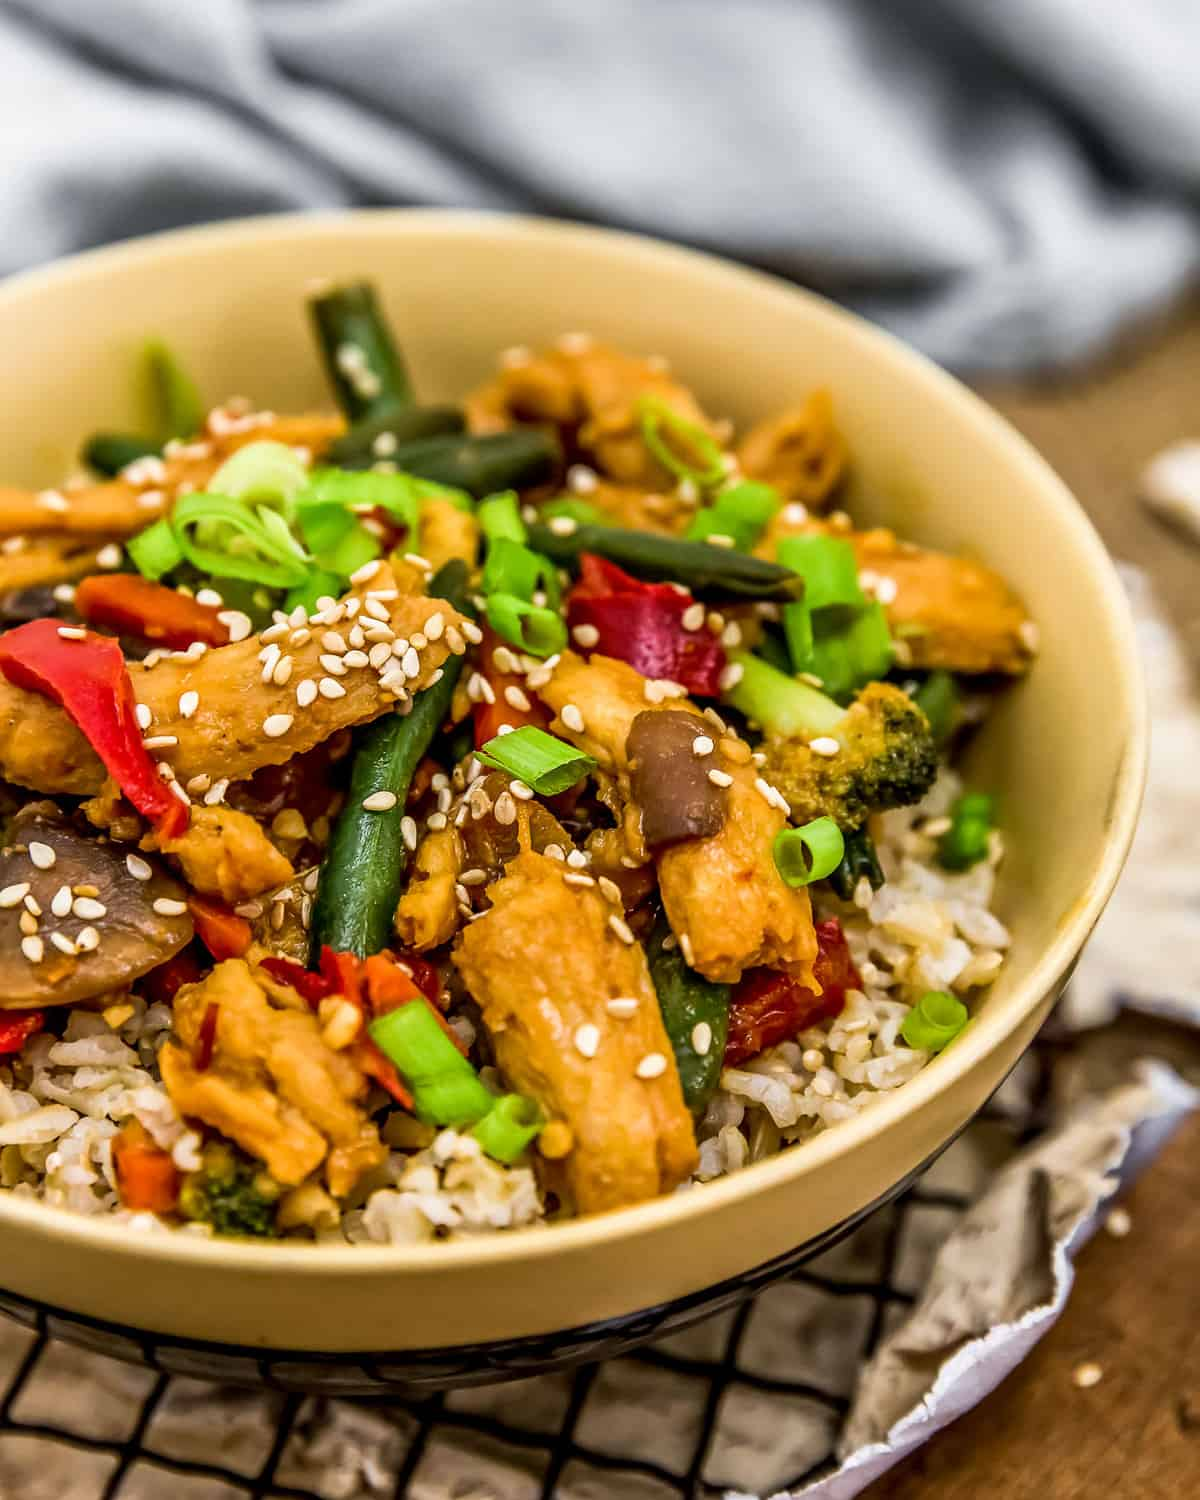 Bowl of Vegan Spicy Honey Garlic Stir Fry